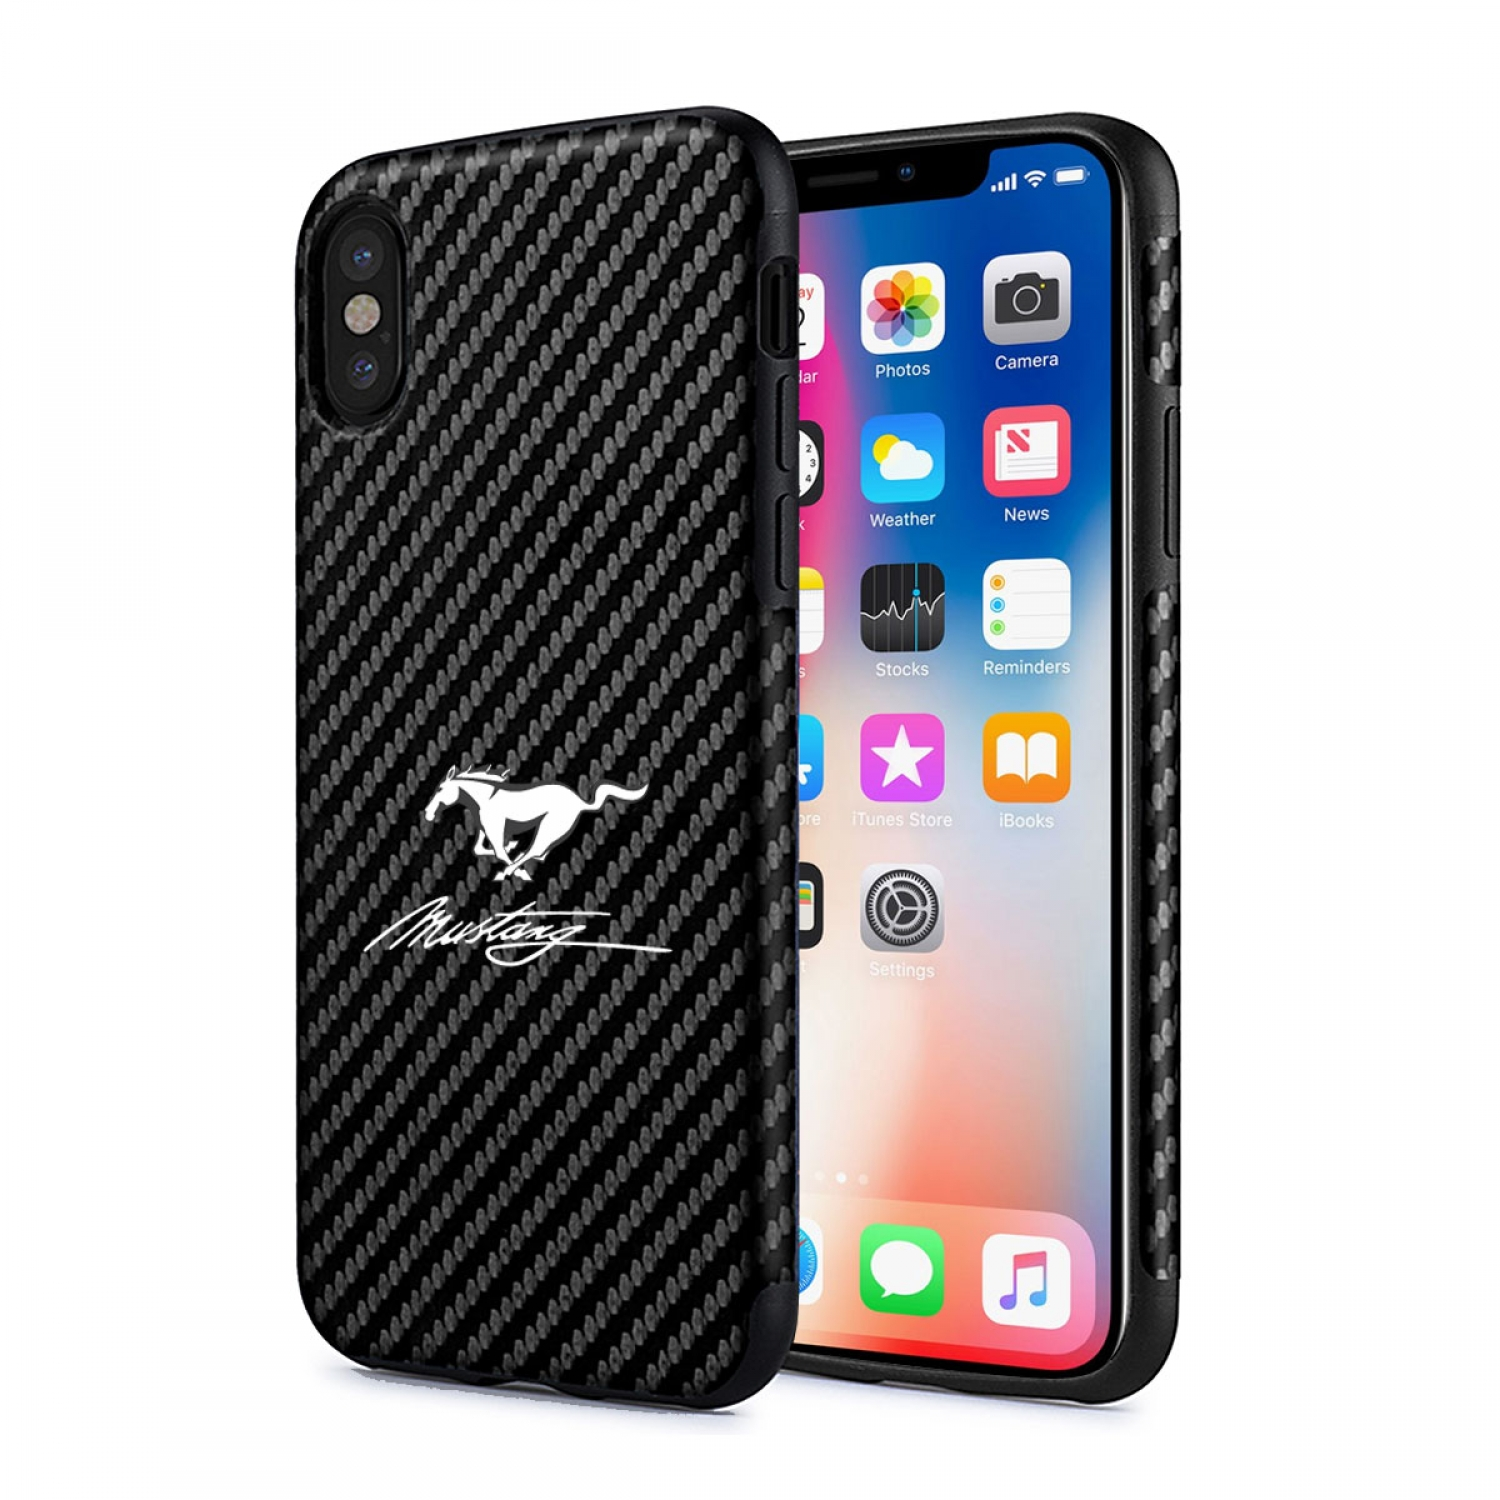 Ford Mustang Script iPhone X Black Carbon Fiber Texture Leather TPU Shockproof Cell Phone Case